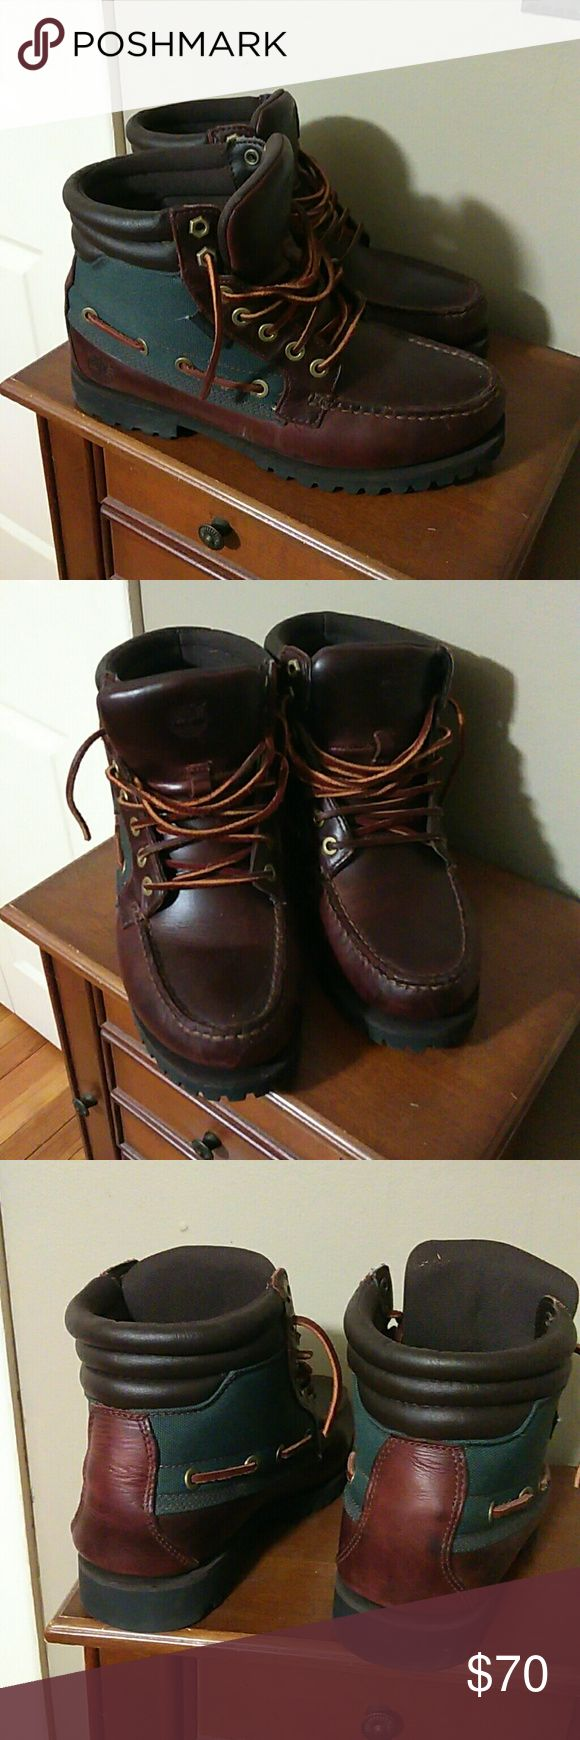 Timberland Chukka boots Men timberland chukka boot great condition.. no box... Runs a little big a wear size 8 and then fit perfect. Timberland Shoes Chukka Boots